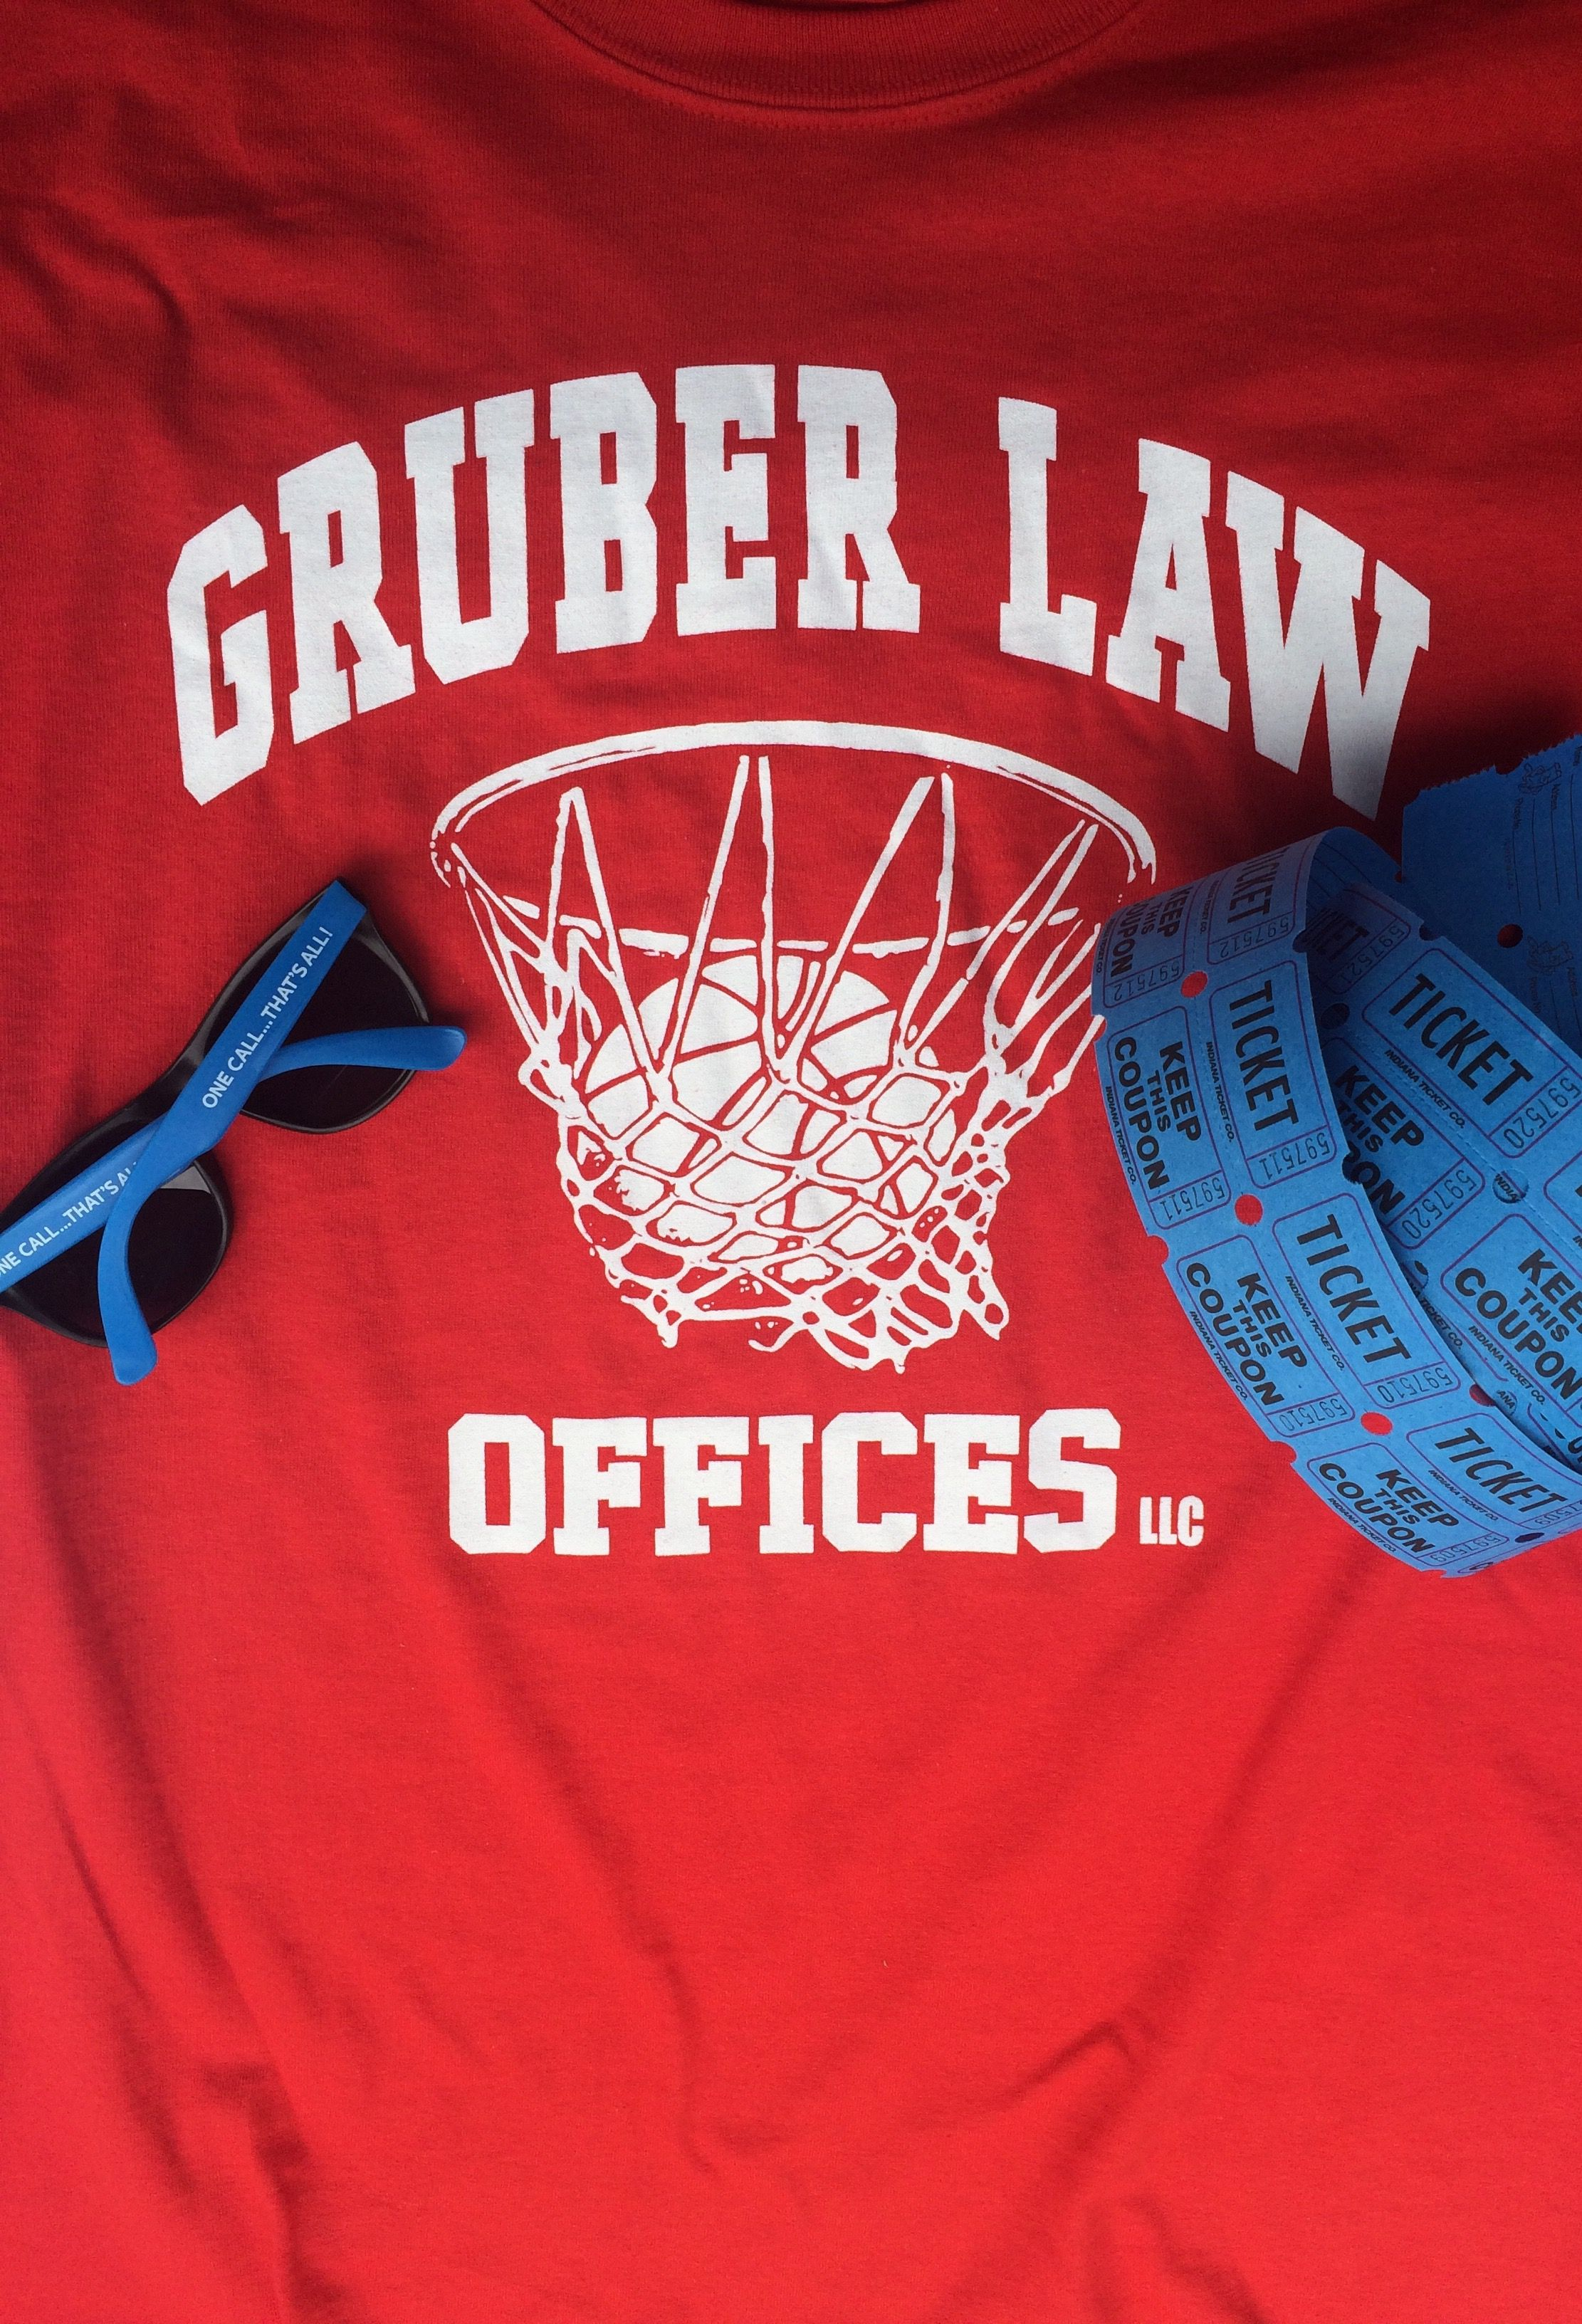 Pin by Gruber Law Offices, LLC on Gruber T-Shirts of